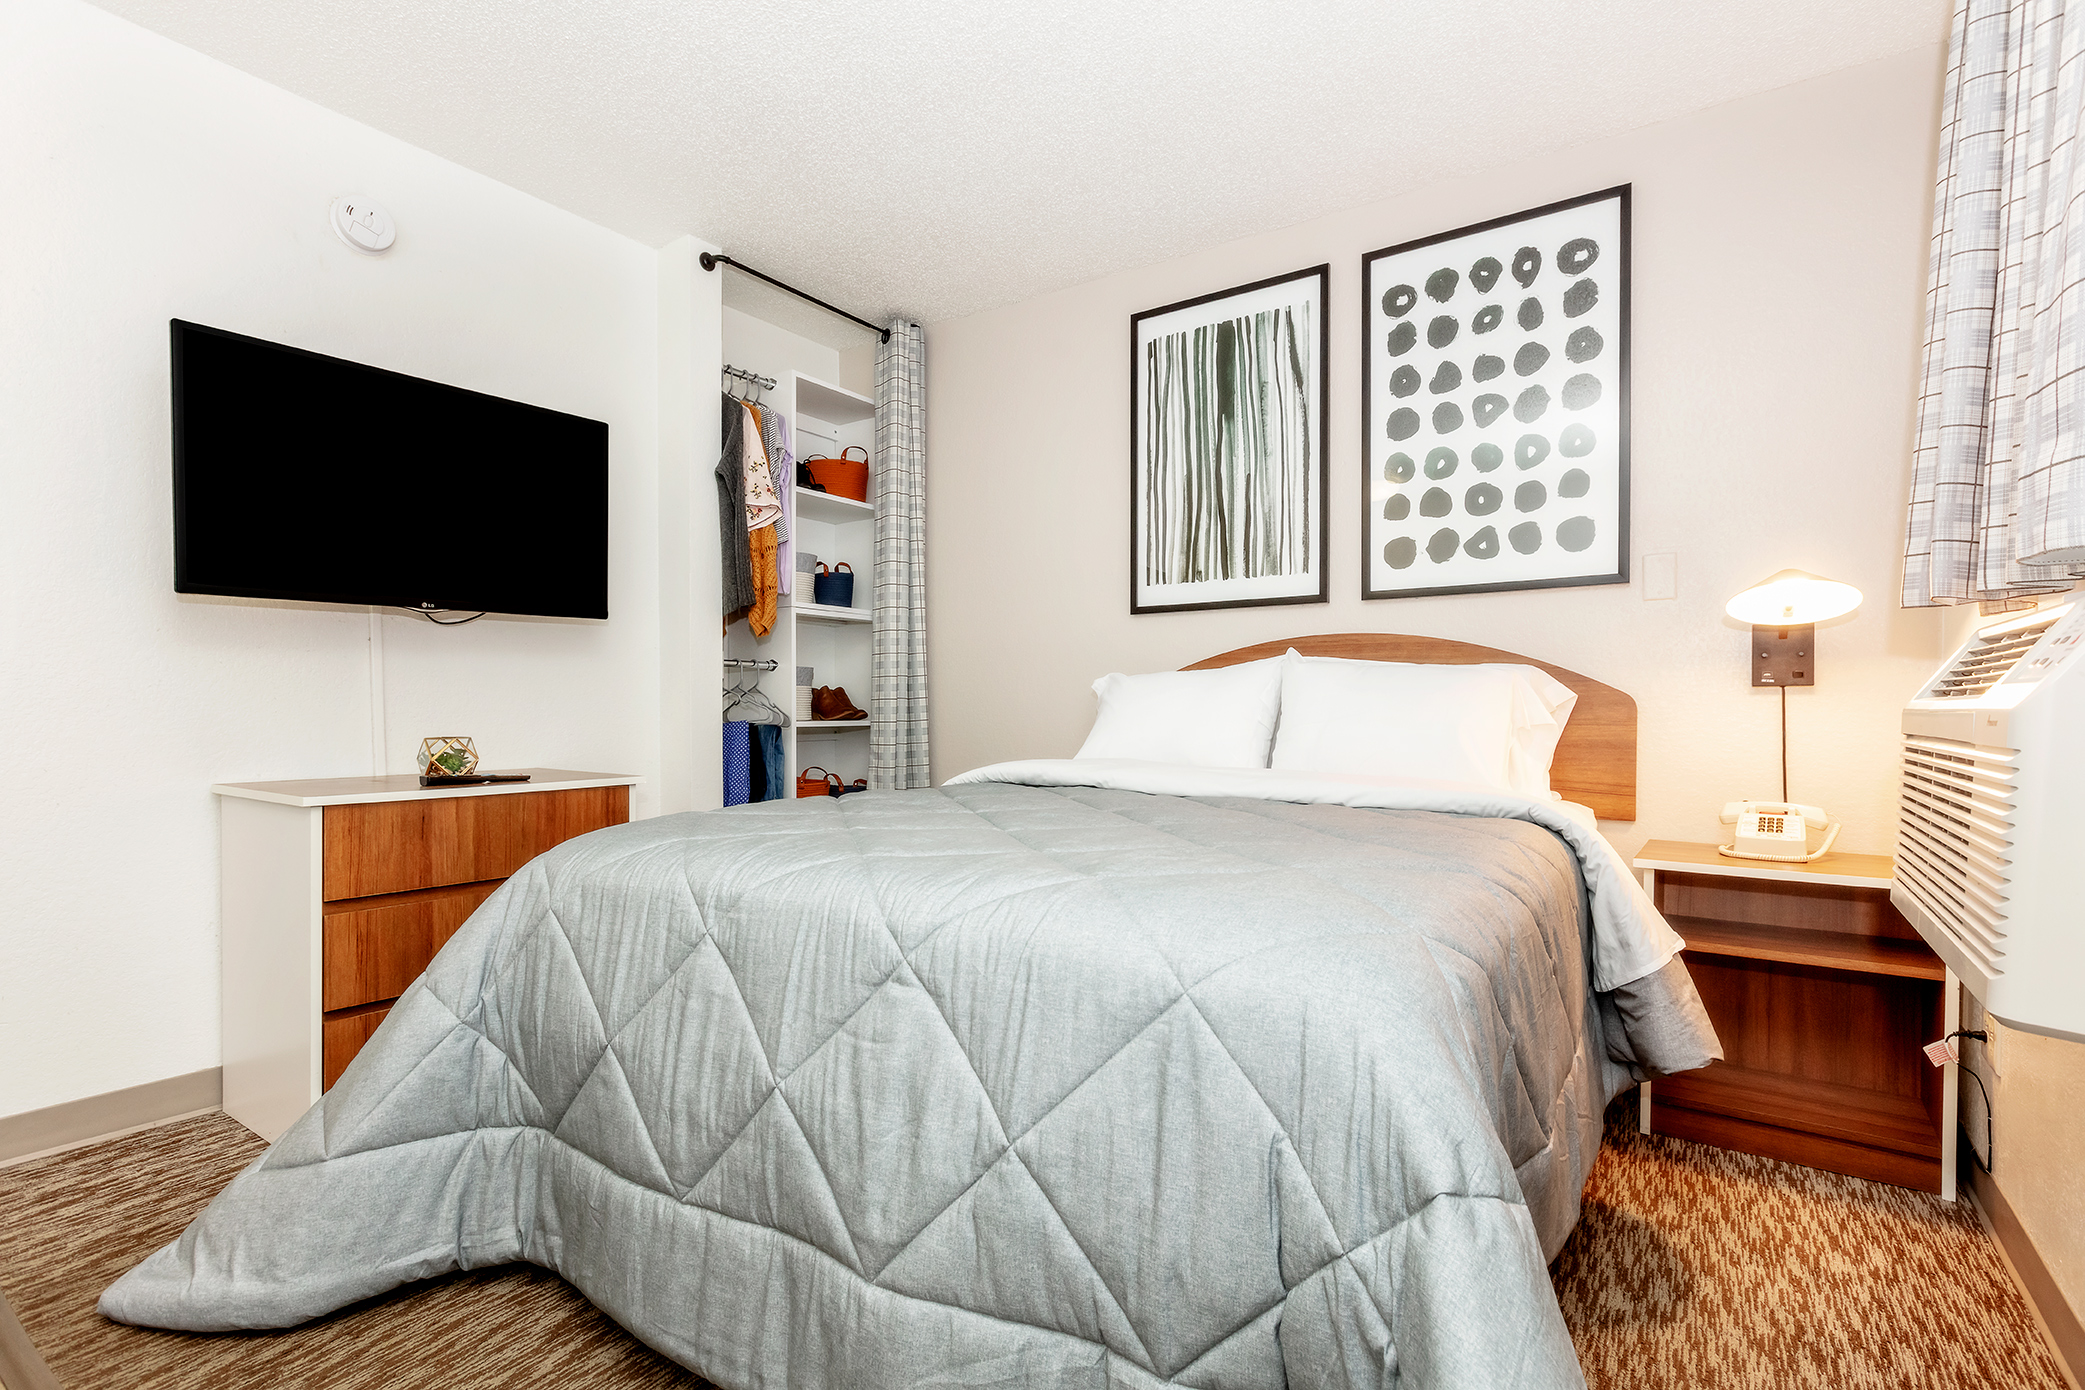 InTown Suites Extended Stay Jacksonville FL - St. Johns